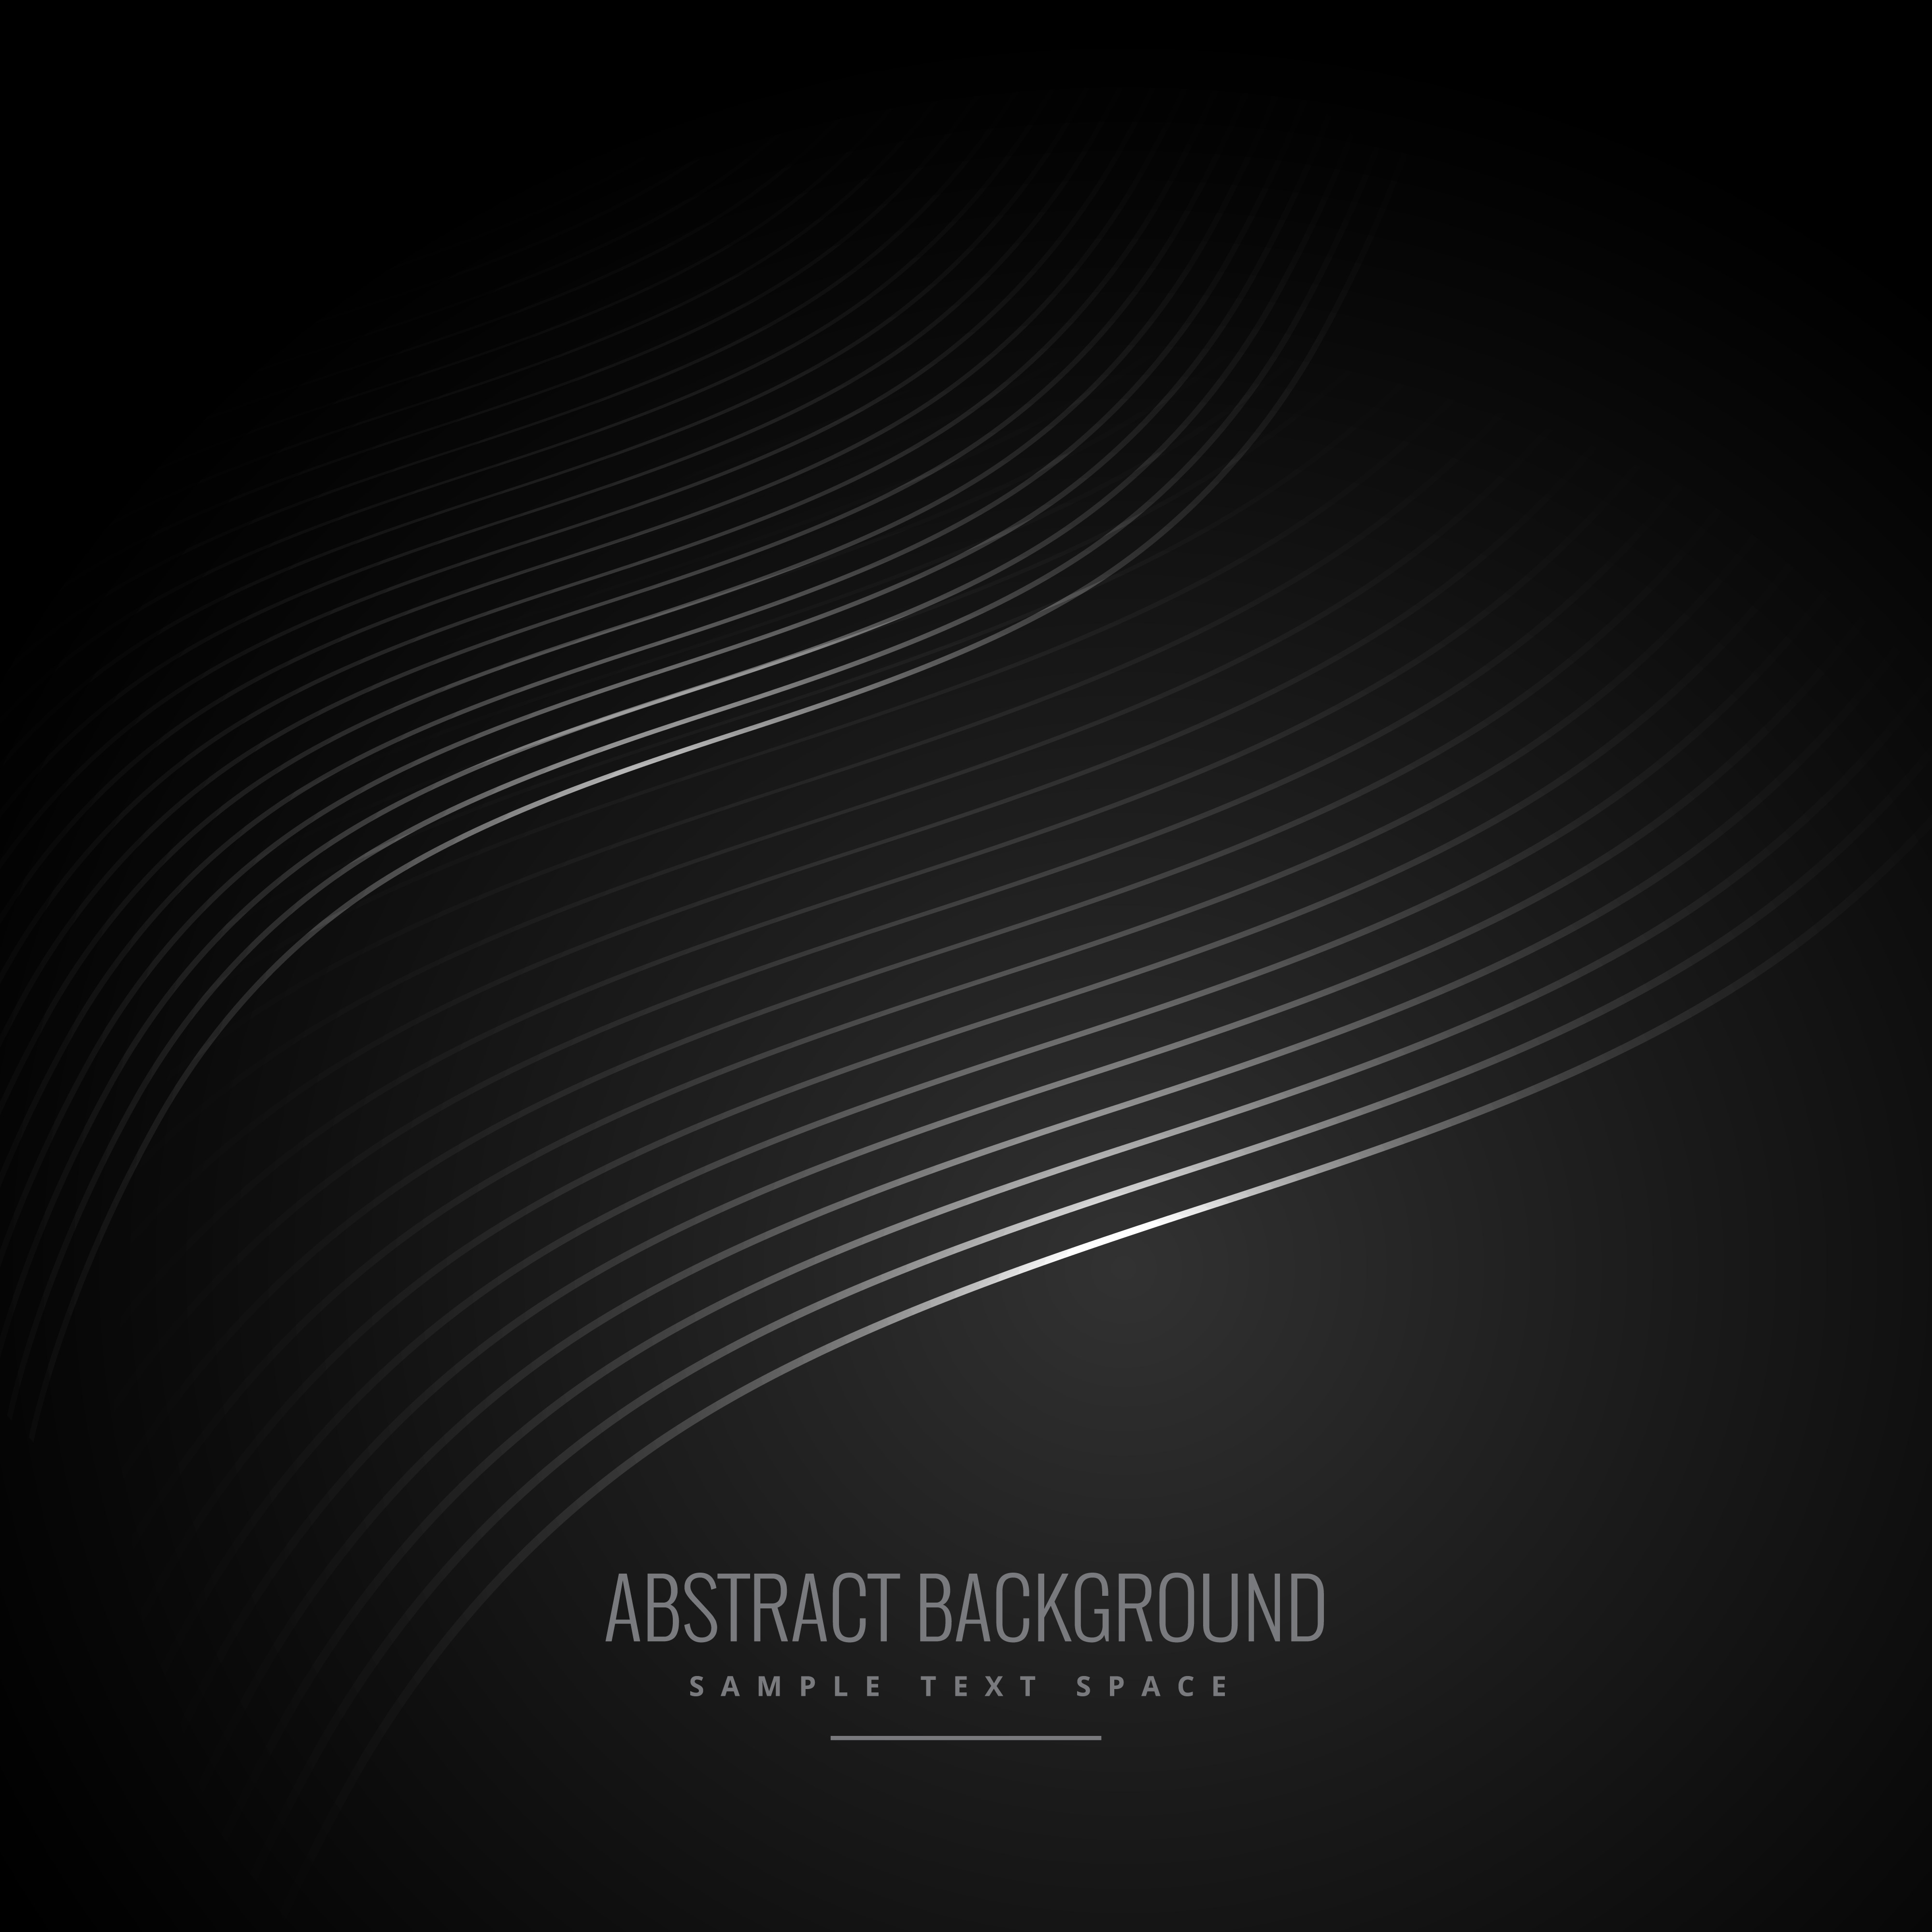 abstract black background with wave lines - Download Free ...